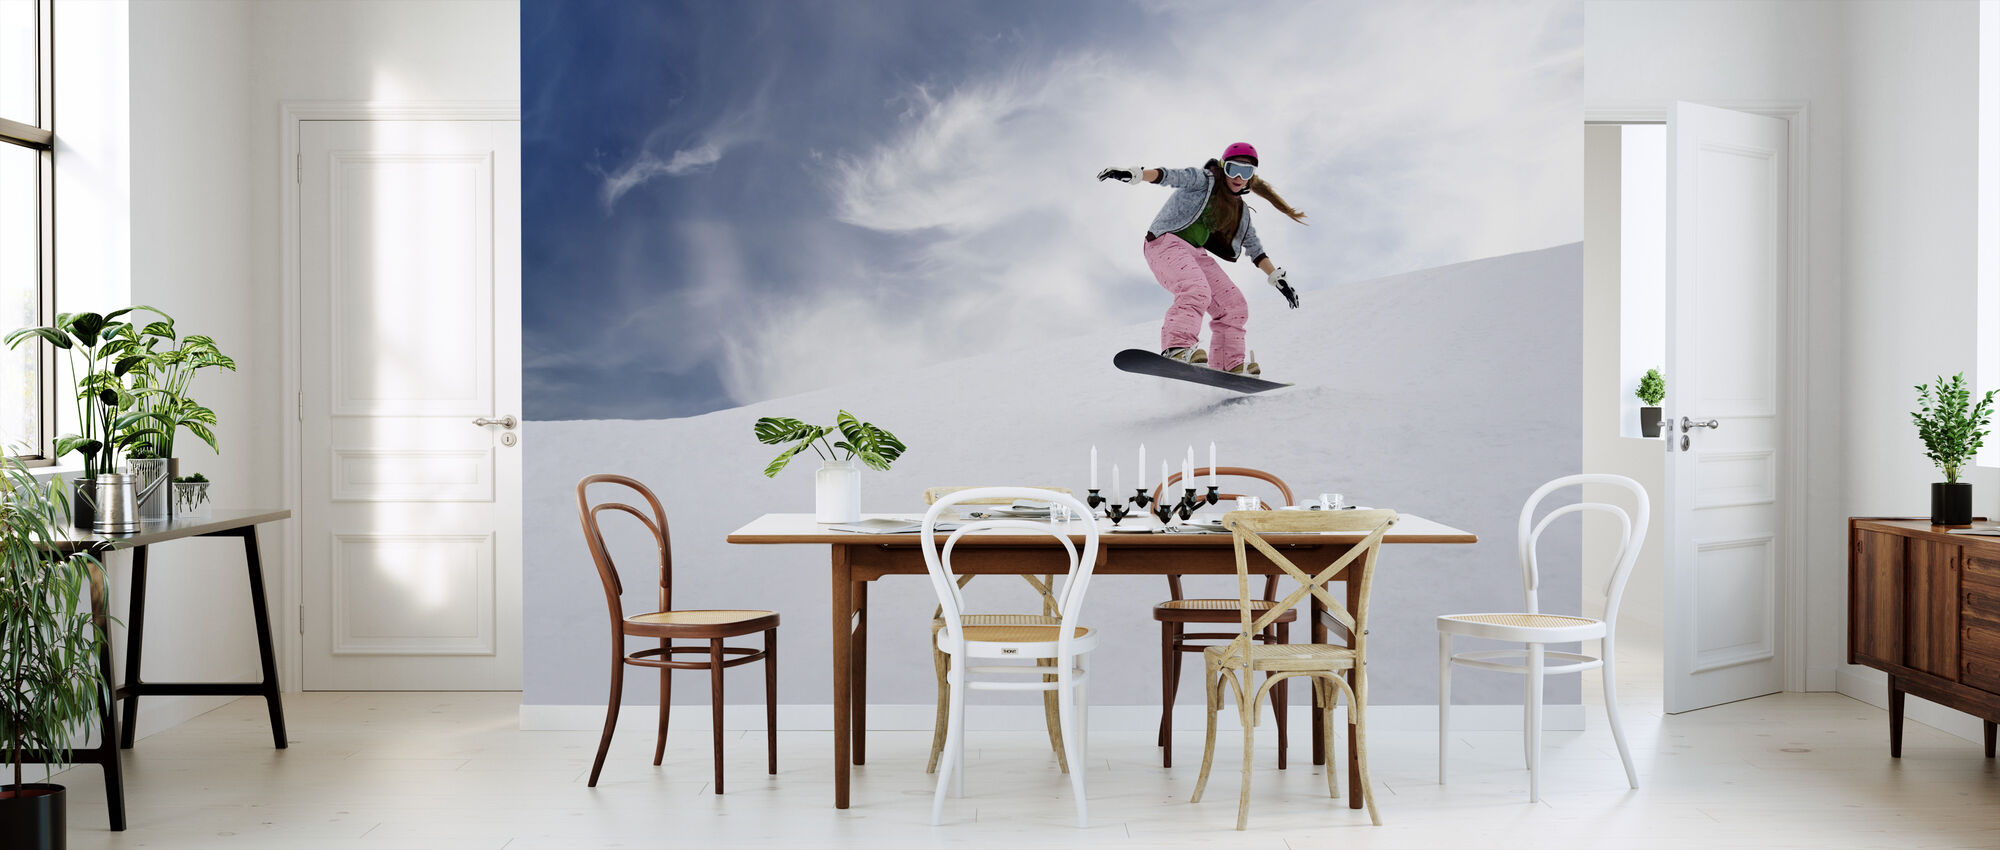 Snowboard Rider - Wallpaper - Kitchen